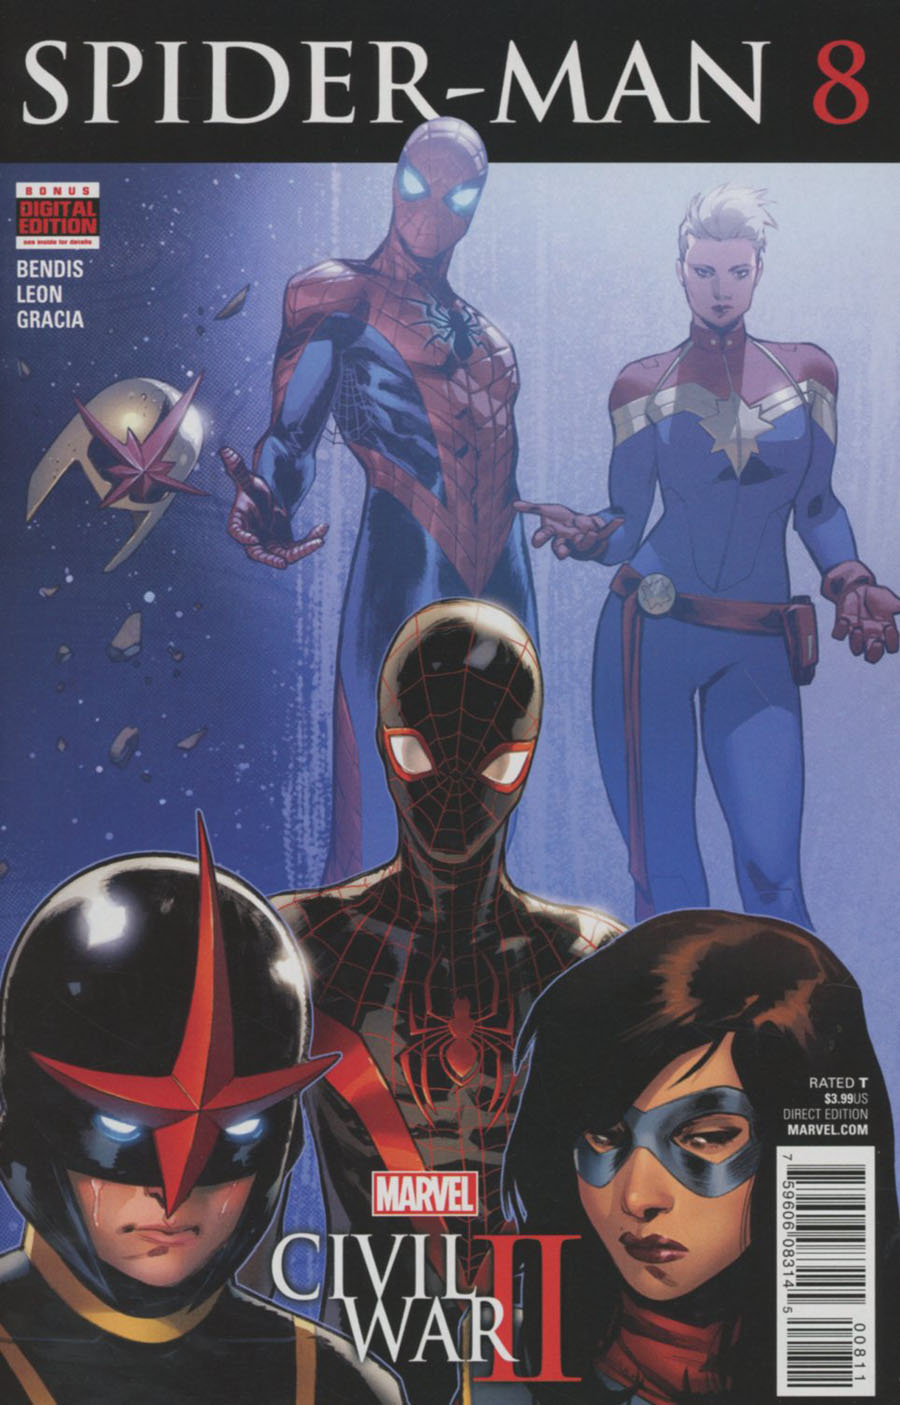 Spider-Man Vol 2 #8 Cover A Regular Sara Pichelli Cover (Civil War II Tie-In)